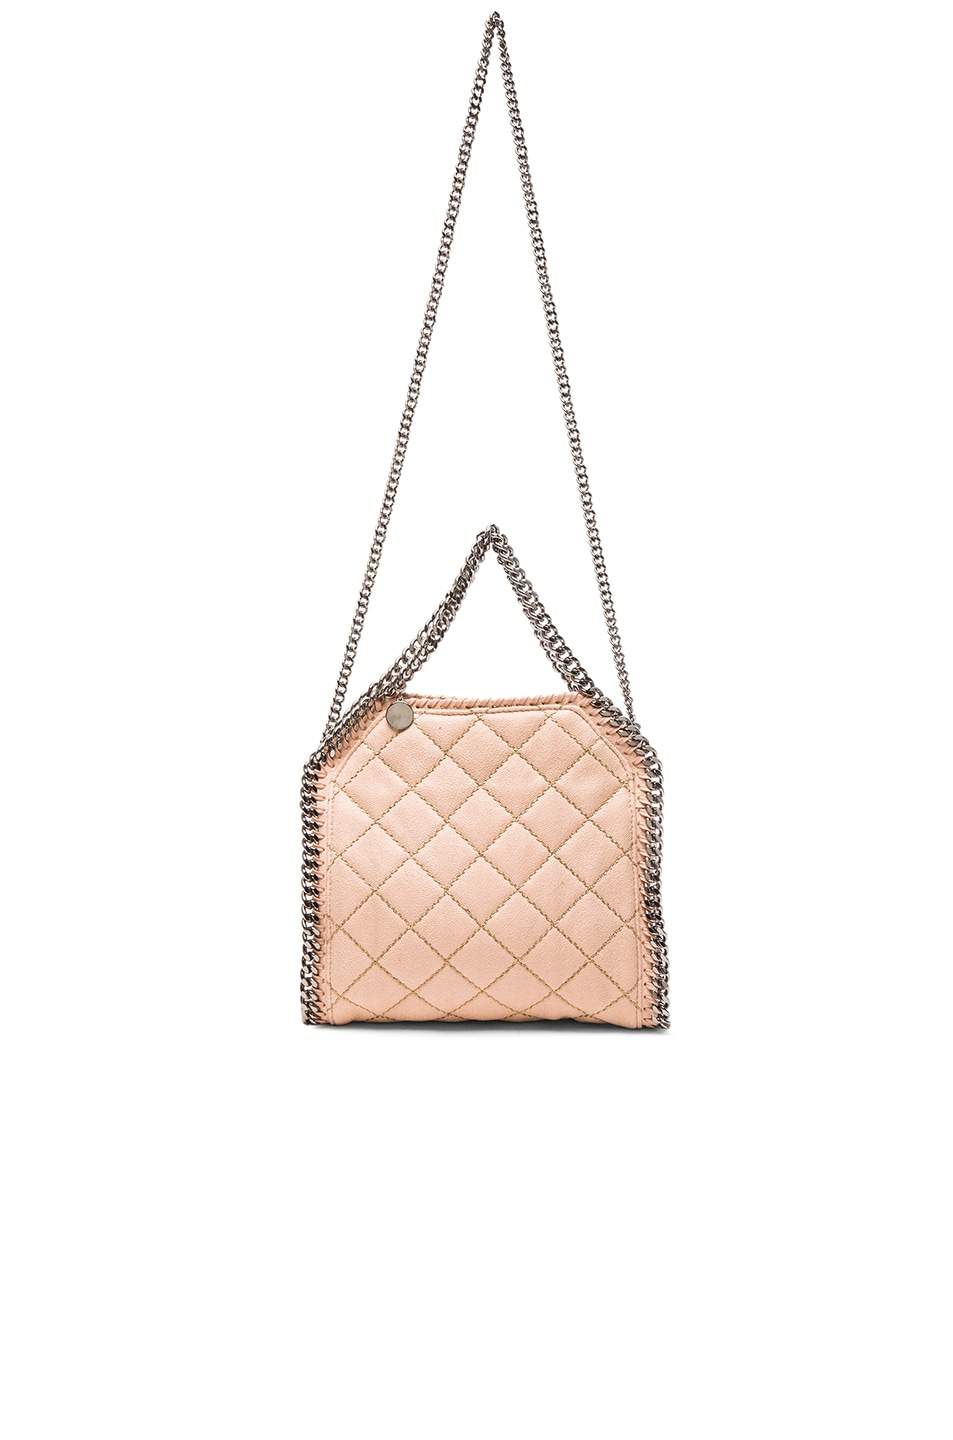 e4238d9abb Image 5 of Stella McCartney Falabella Quilted Shaggy Deer Tiny Tote in  Powder